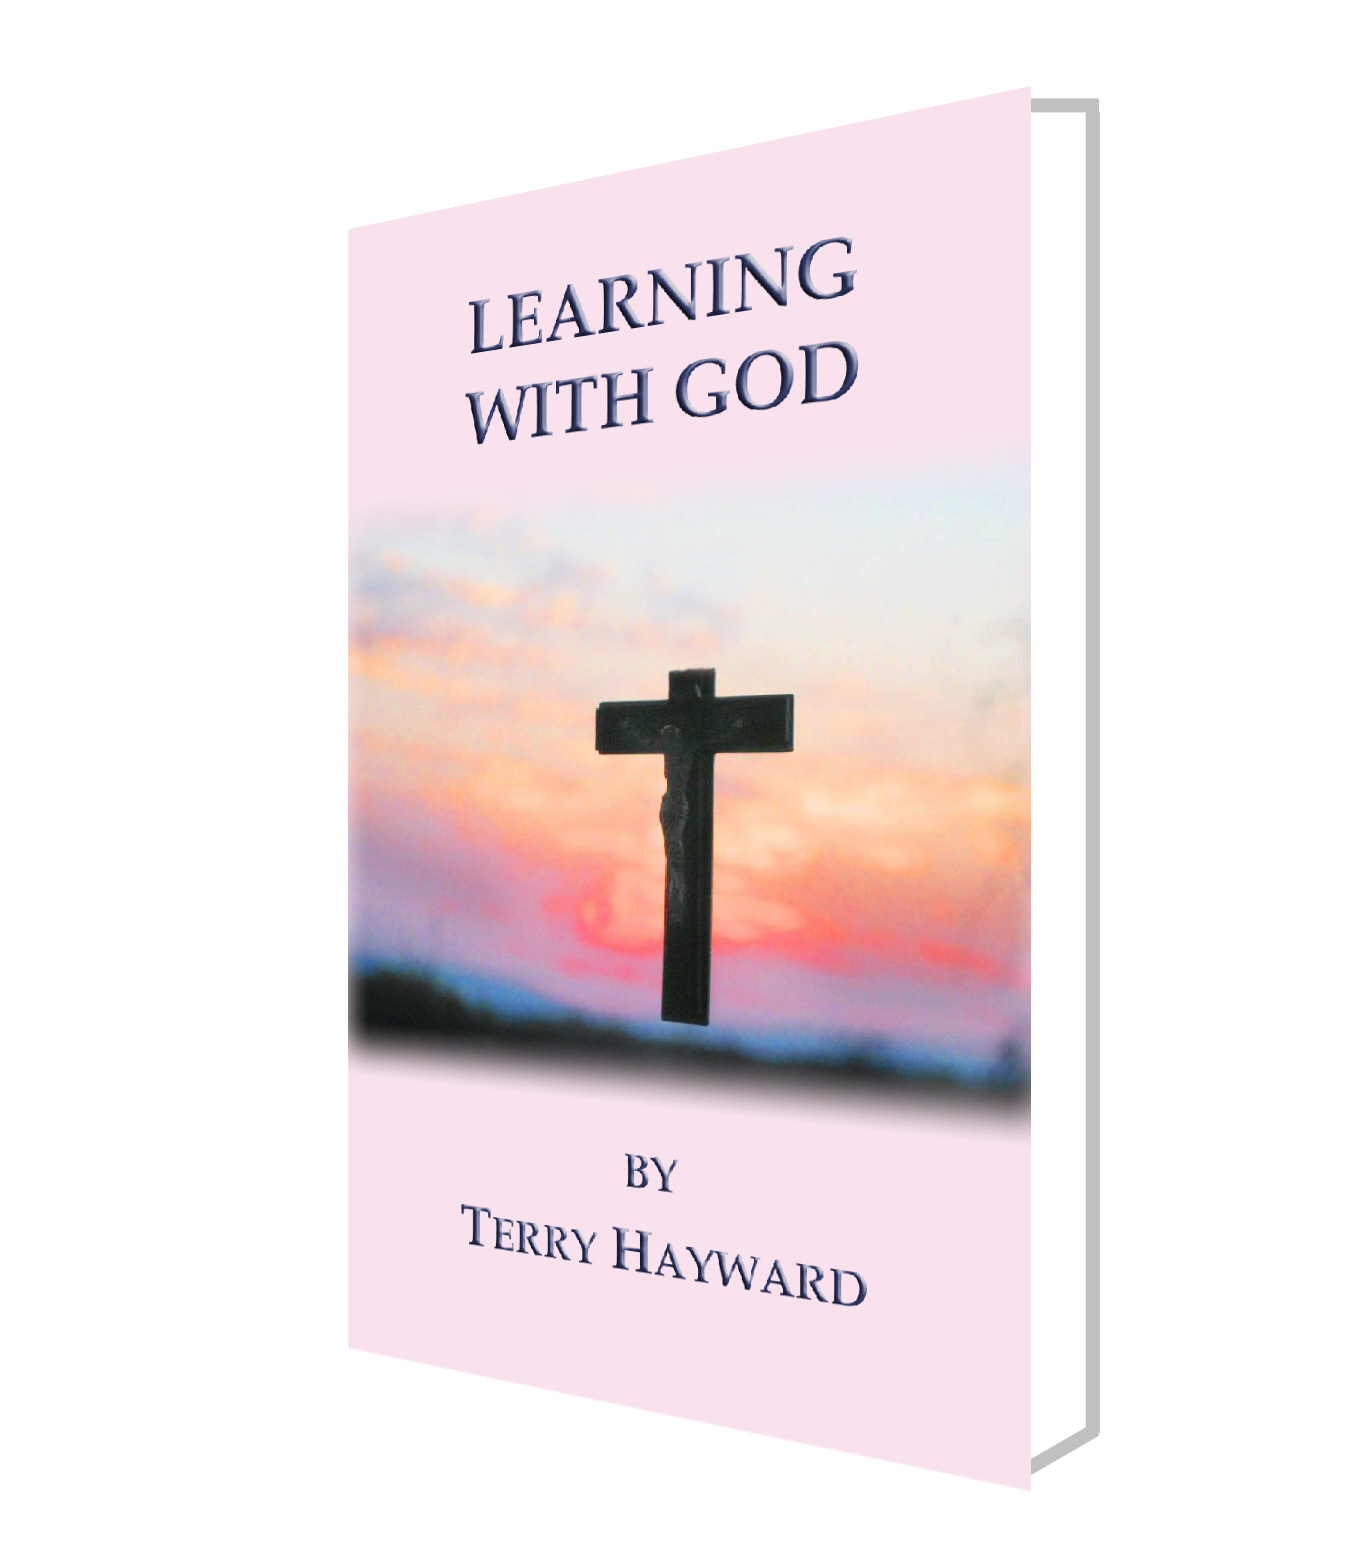 LEARNING WITH GOD - Book 3 in the .....With God Series